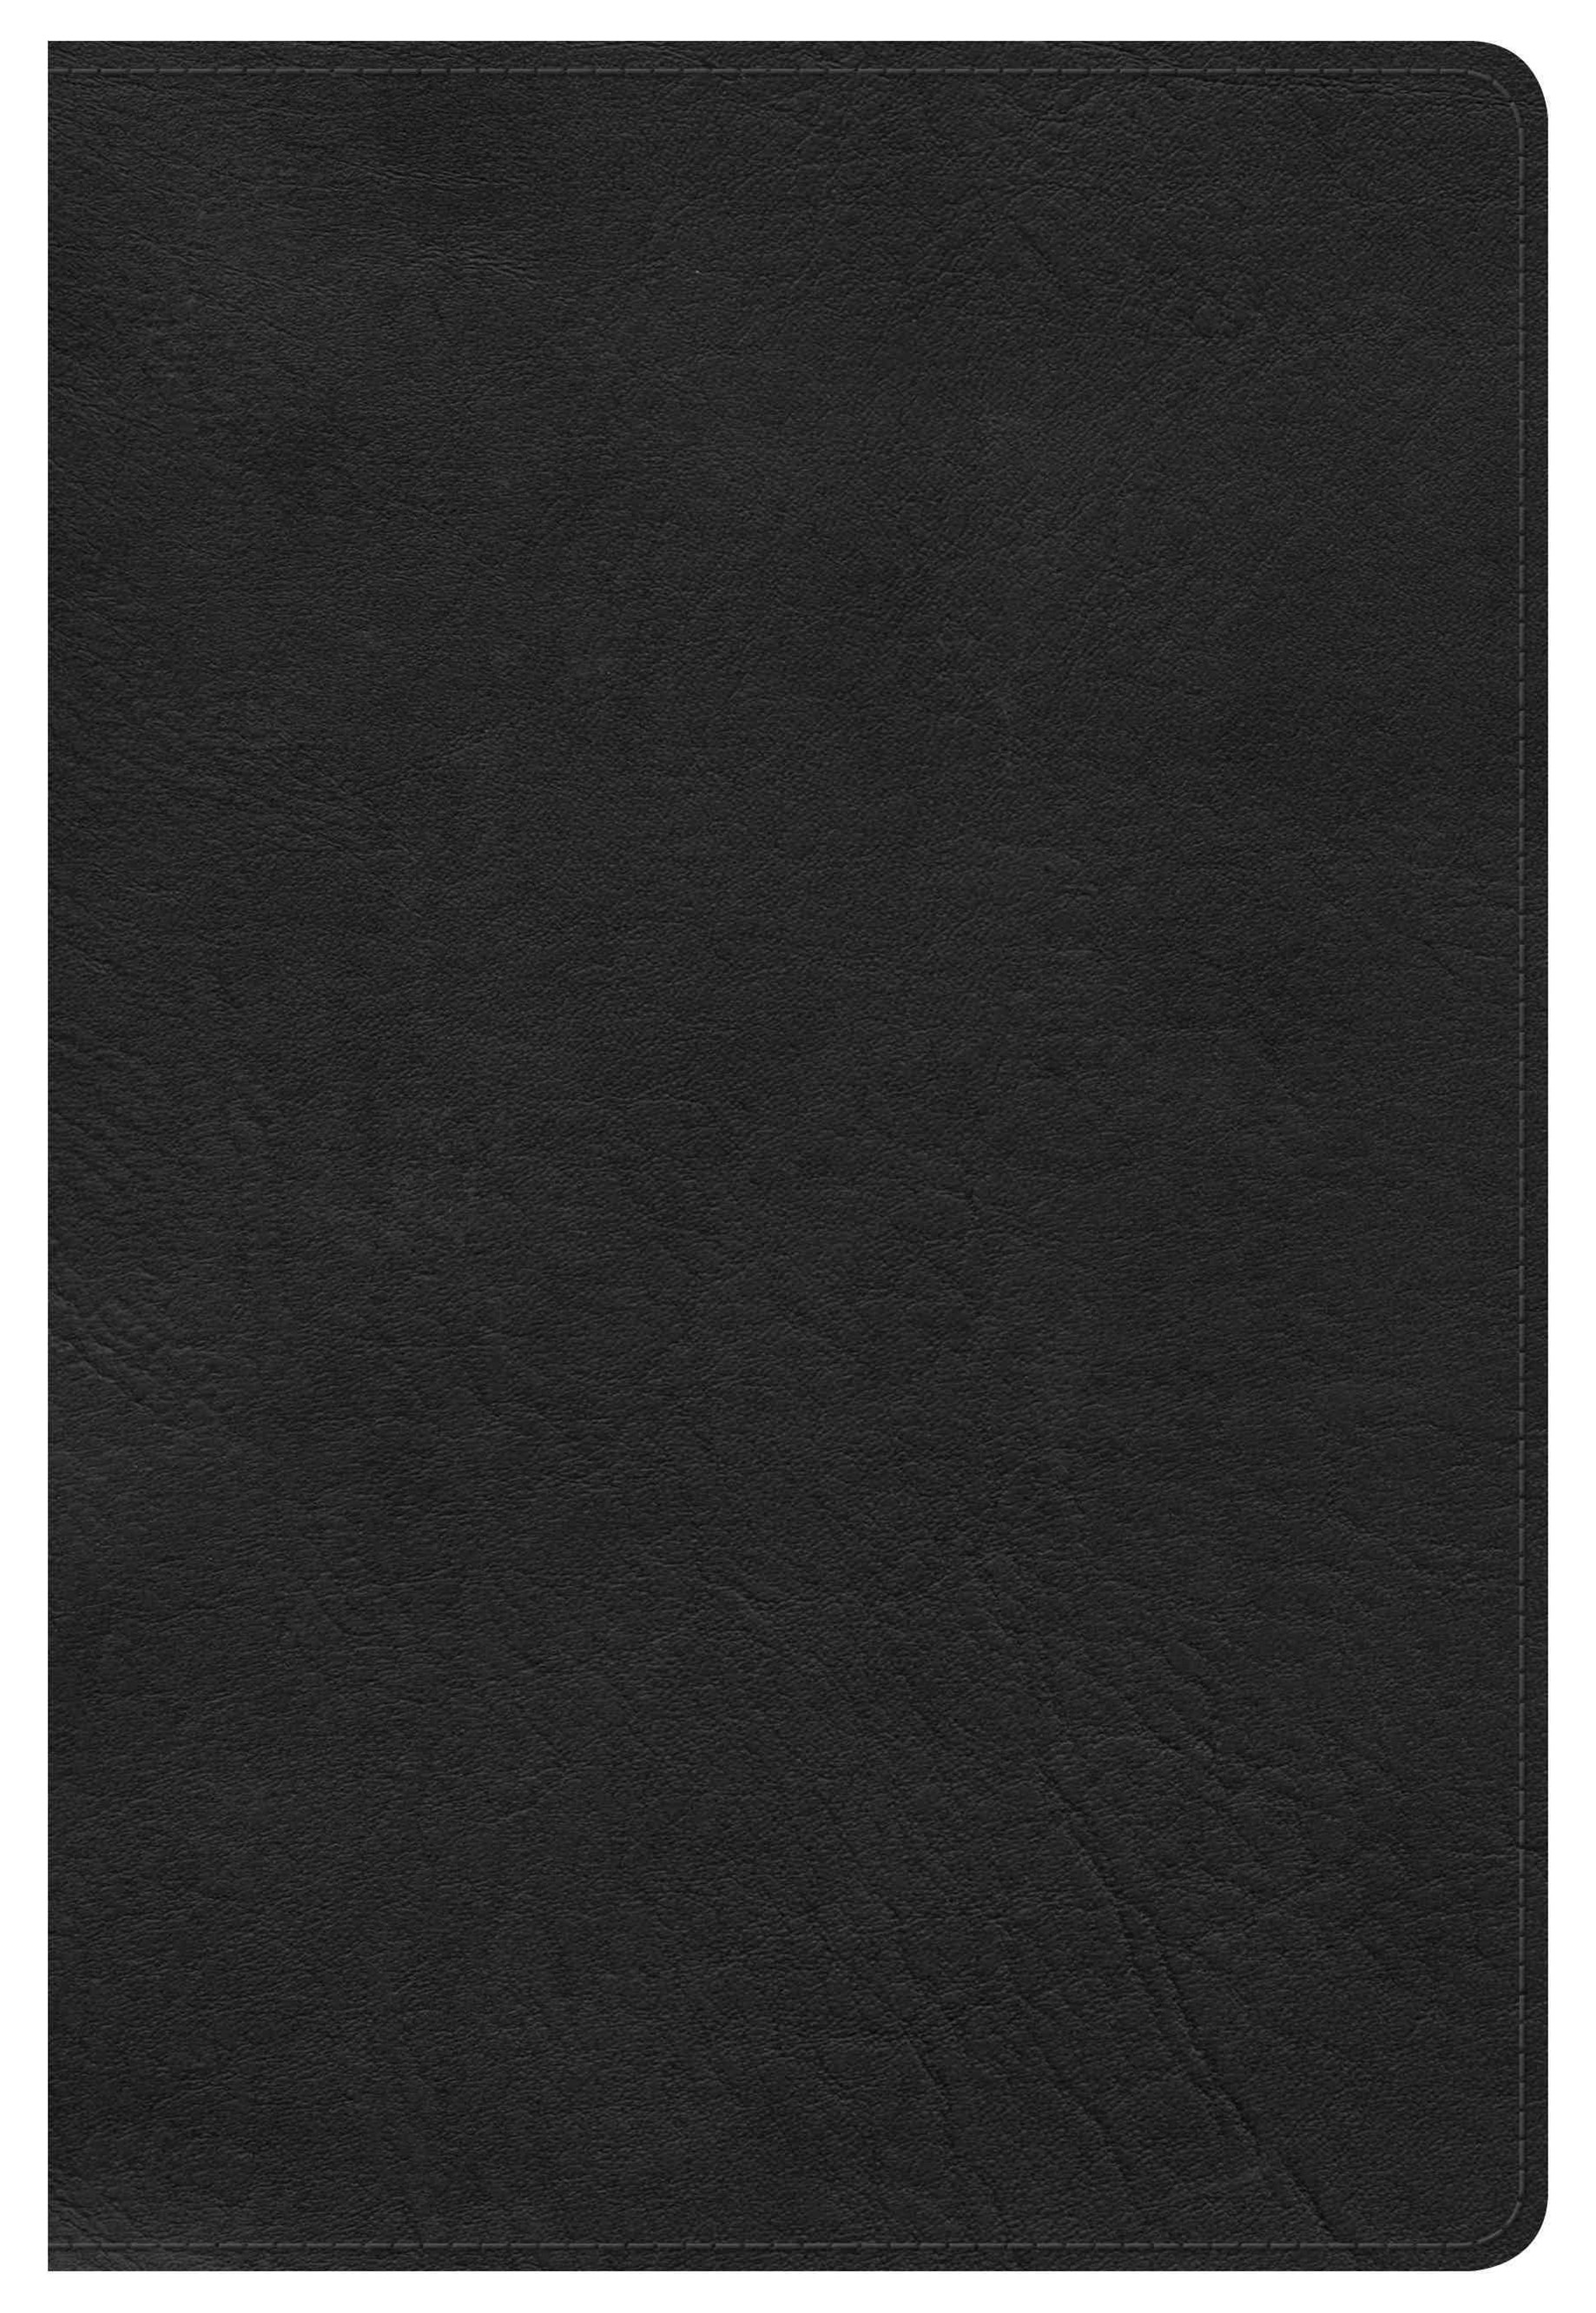 HCSB Large Print Personal Size Bible, Black LeatherTouch, Indexed